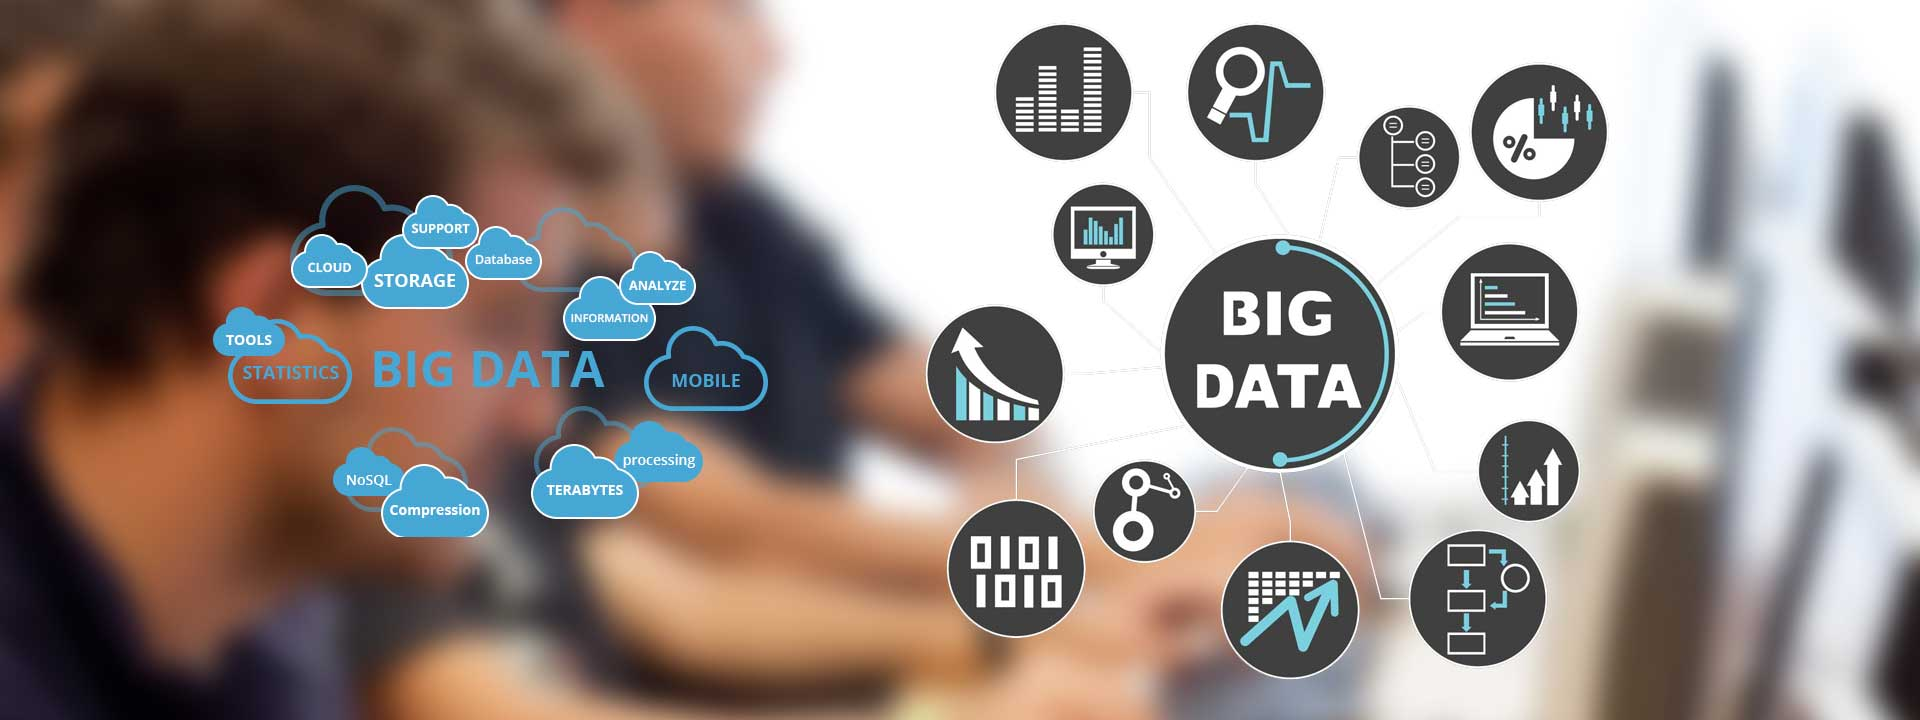 big data training course